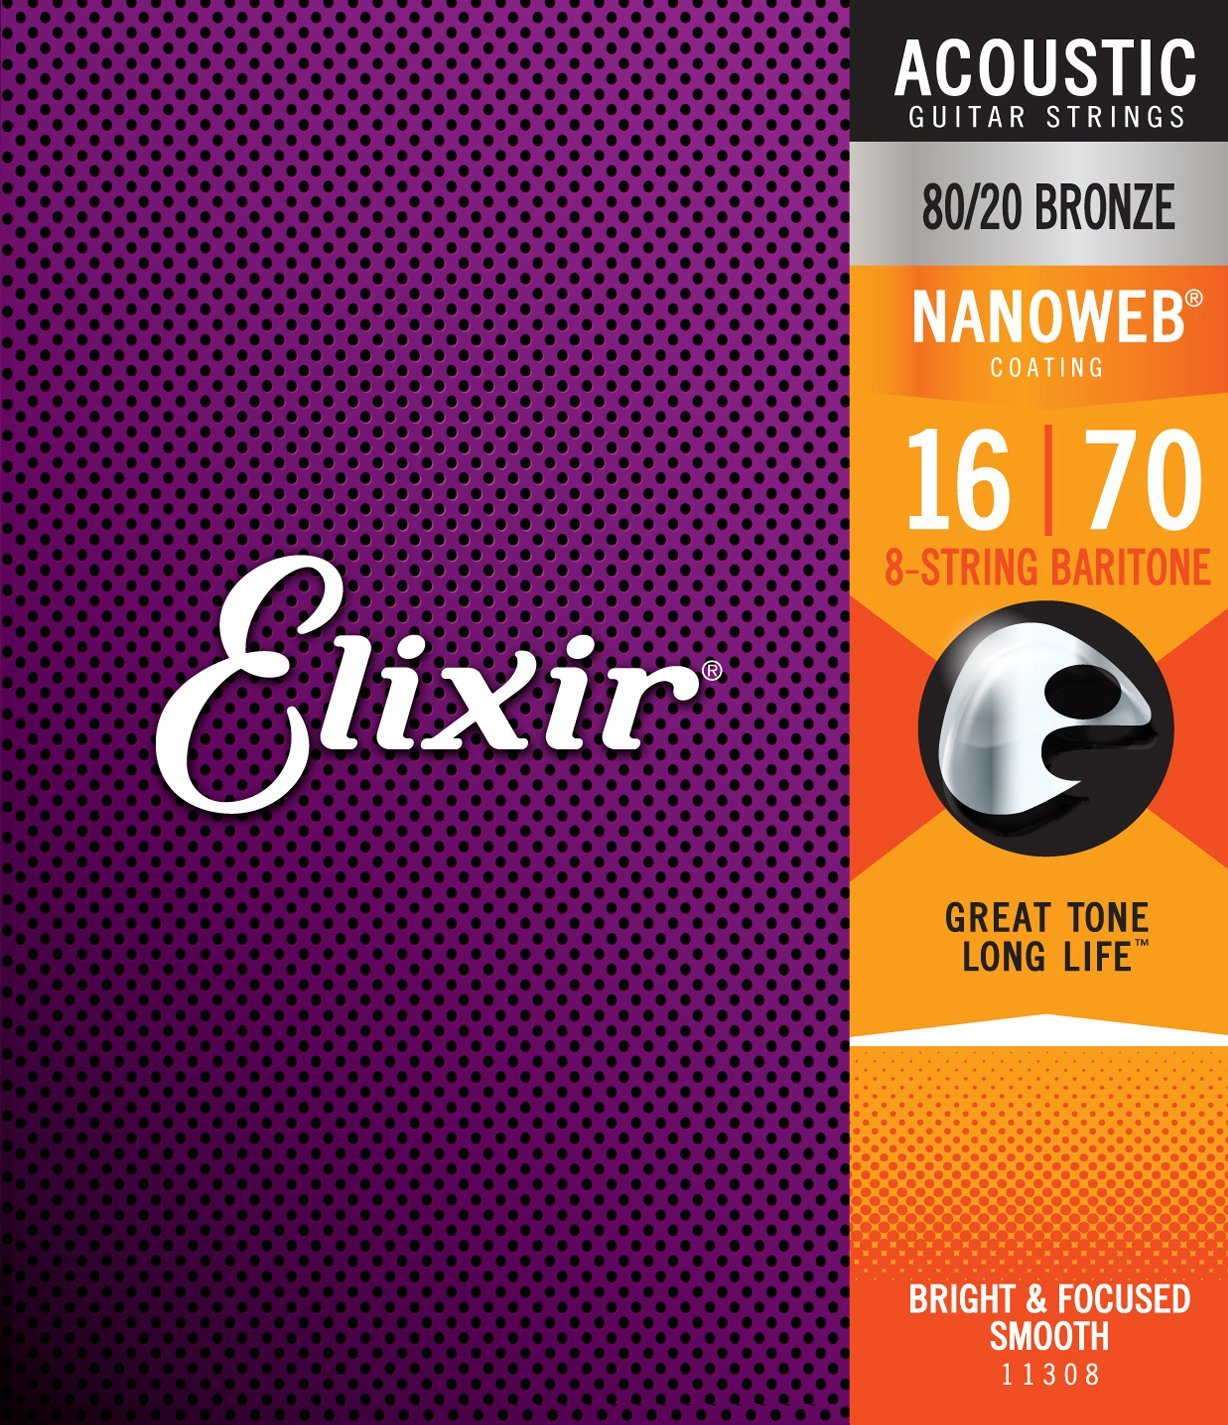 Elixir Nanoweb 8-String Baritone 80/20 Acoustic Strings